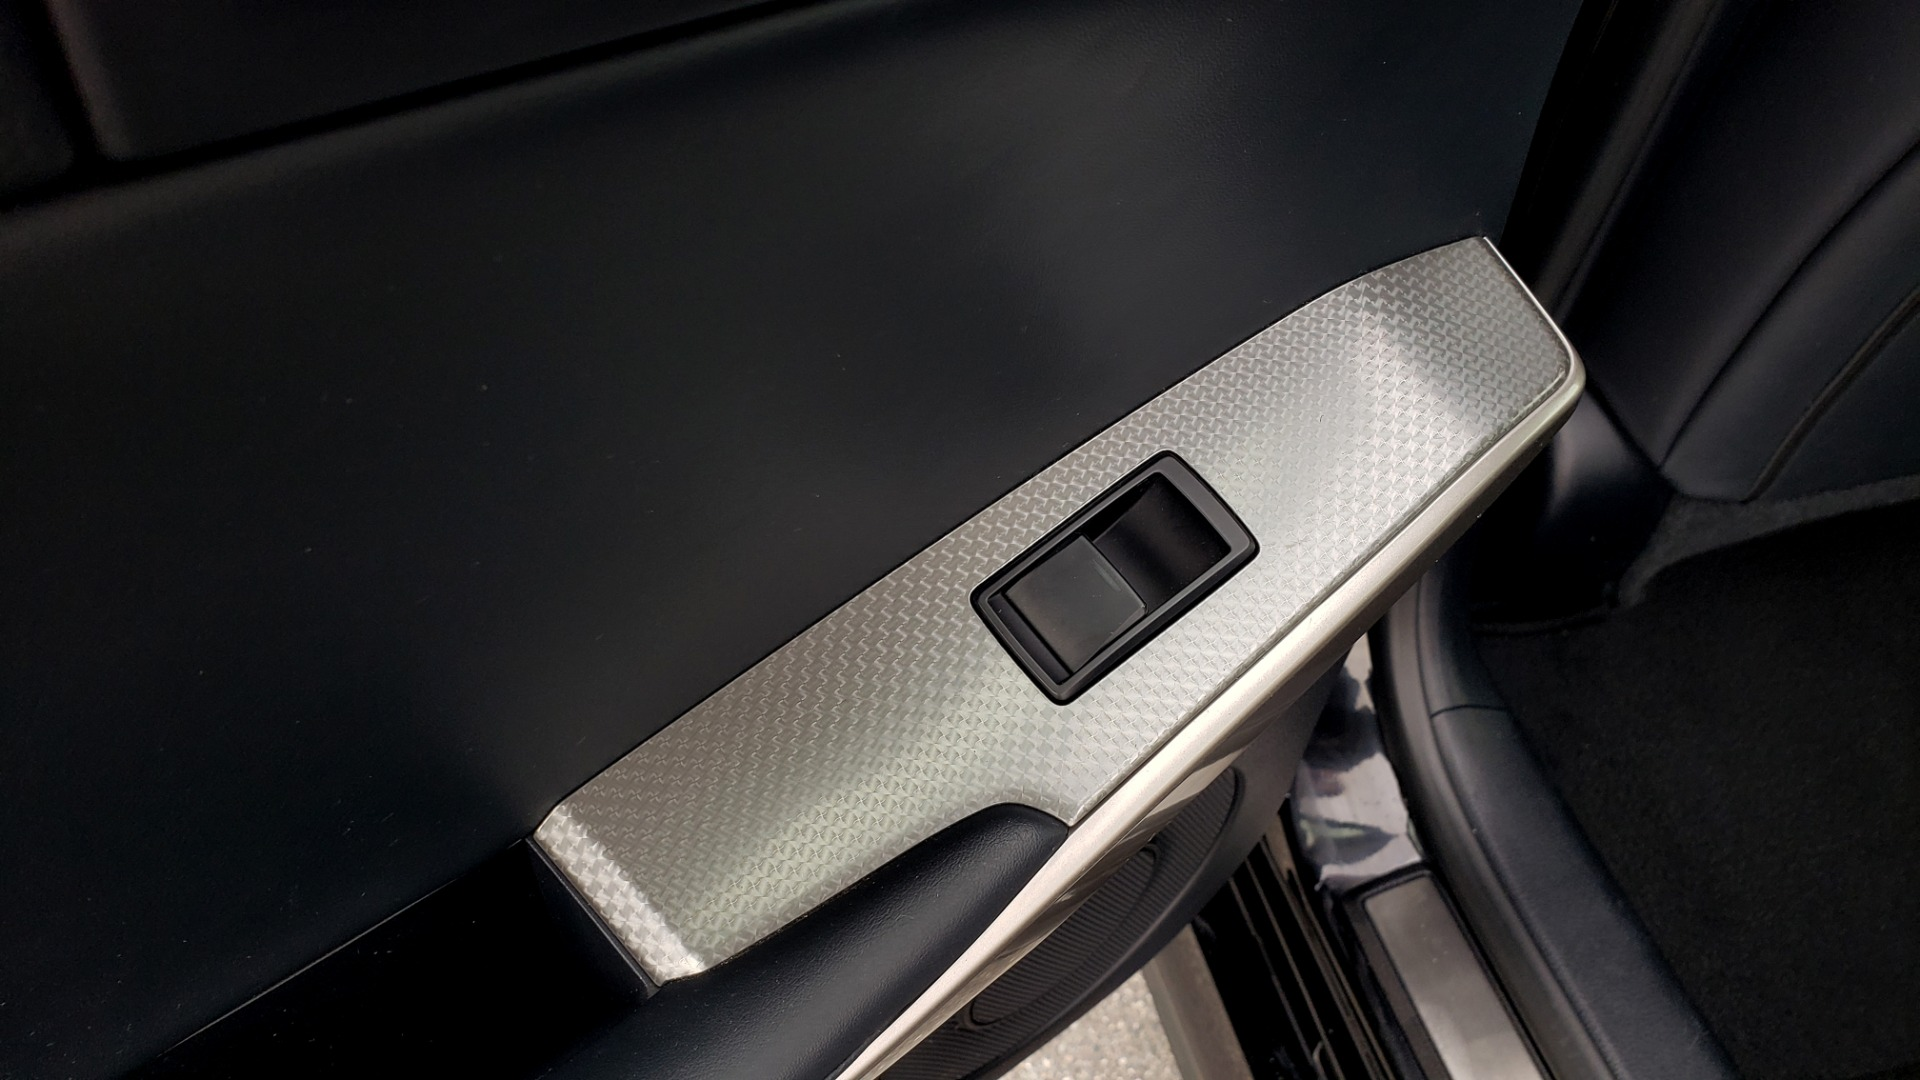 Used 2015 Lexus IS 250 F-SPORT / BLIND SPOT MON / SUNROOF / REARVIEW for sale Sold at Formula Imports in Charlotte NC 28227 59